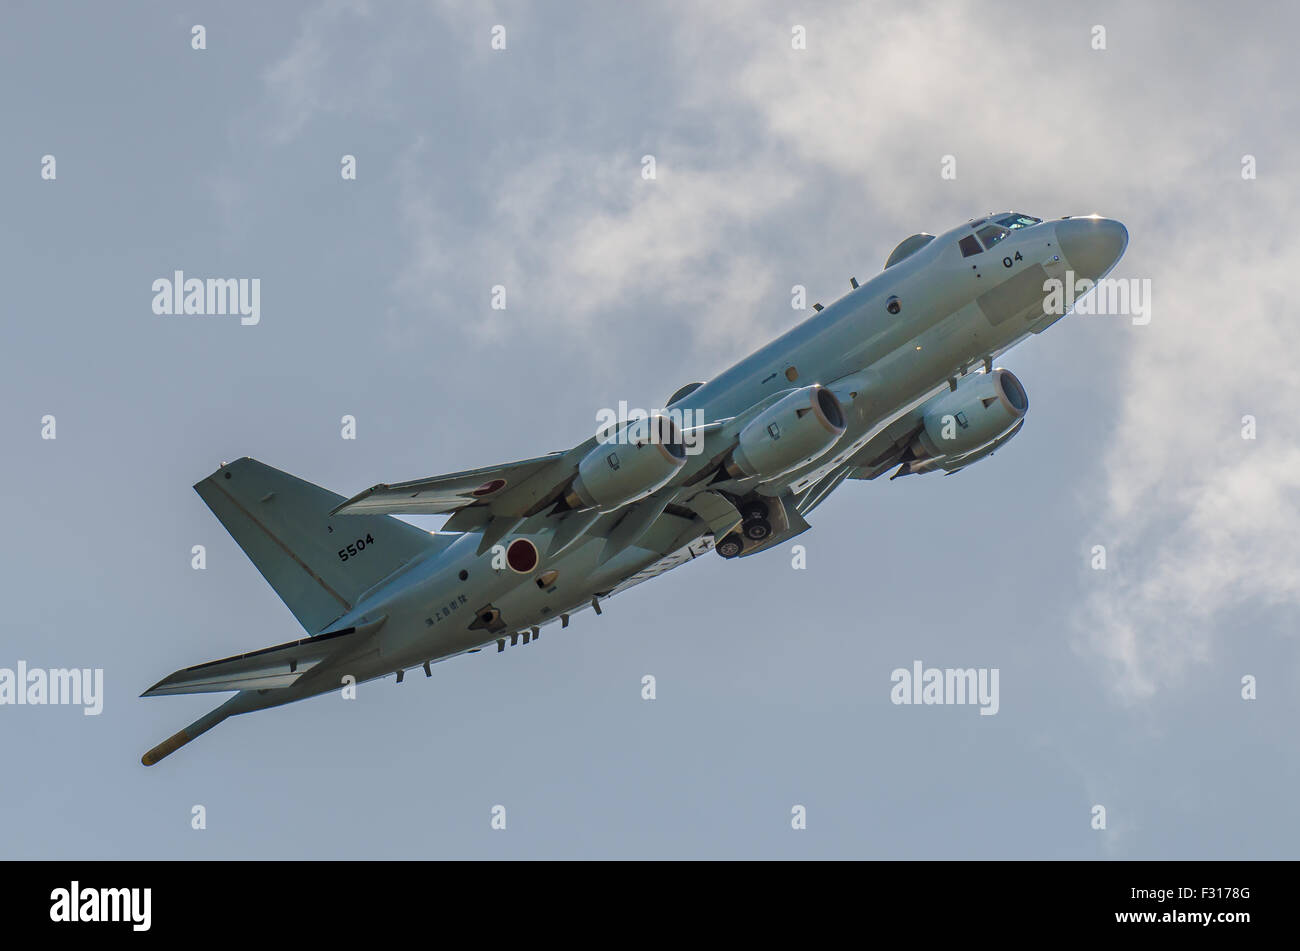 The Kawasaki P-1 is Japanese maritime patrol aircraft in service with the Japan Maritime Self-Defense Force hoping - Stock Image